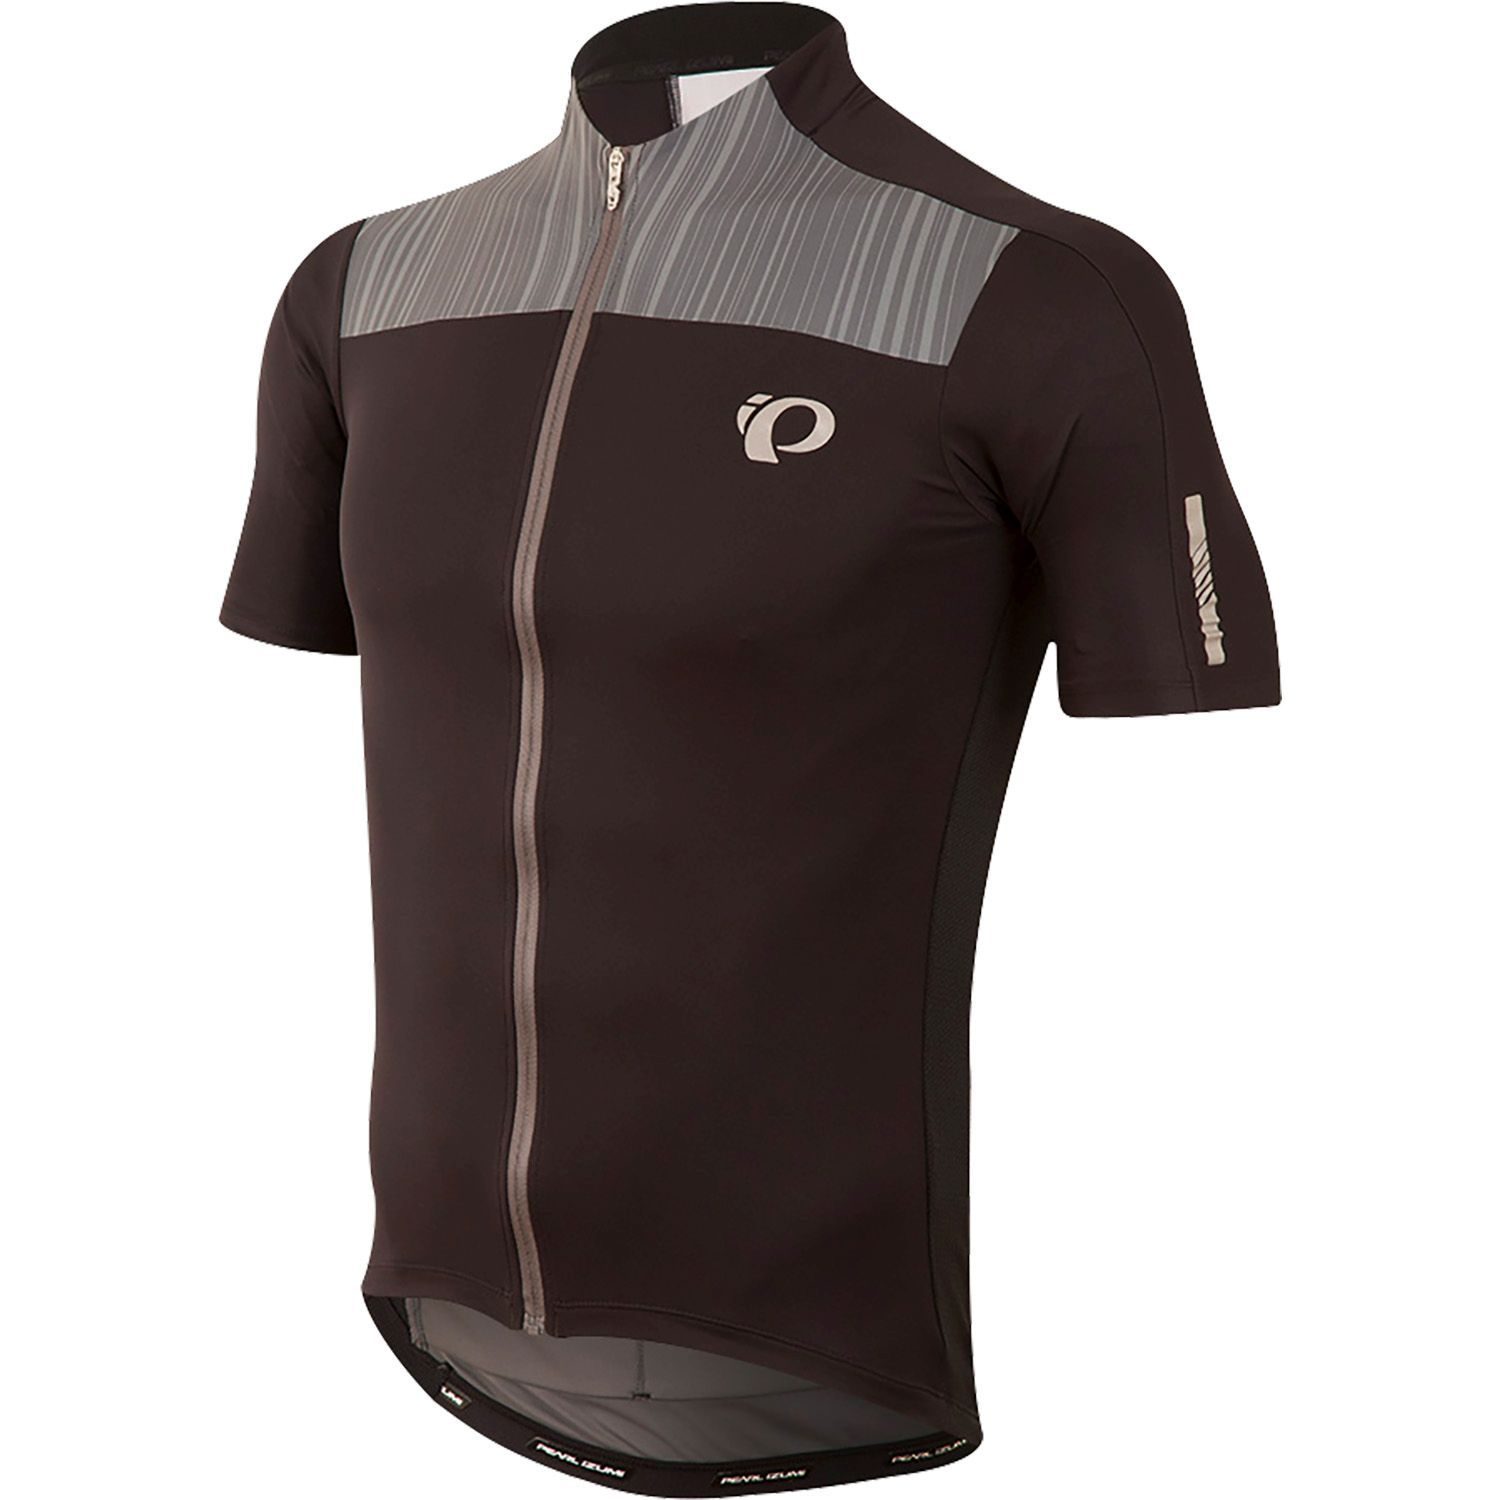 PEARL iZUMi ELITE PURSUIT dres, černá / SMOKED PEARL RUSH, XL